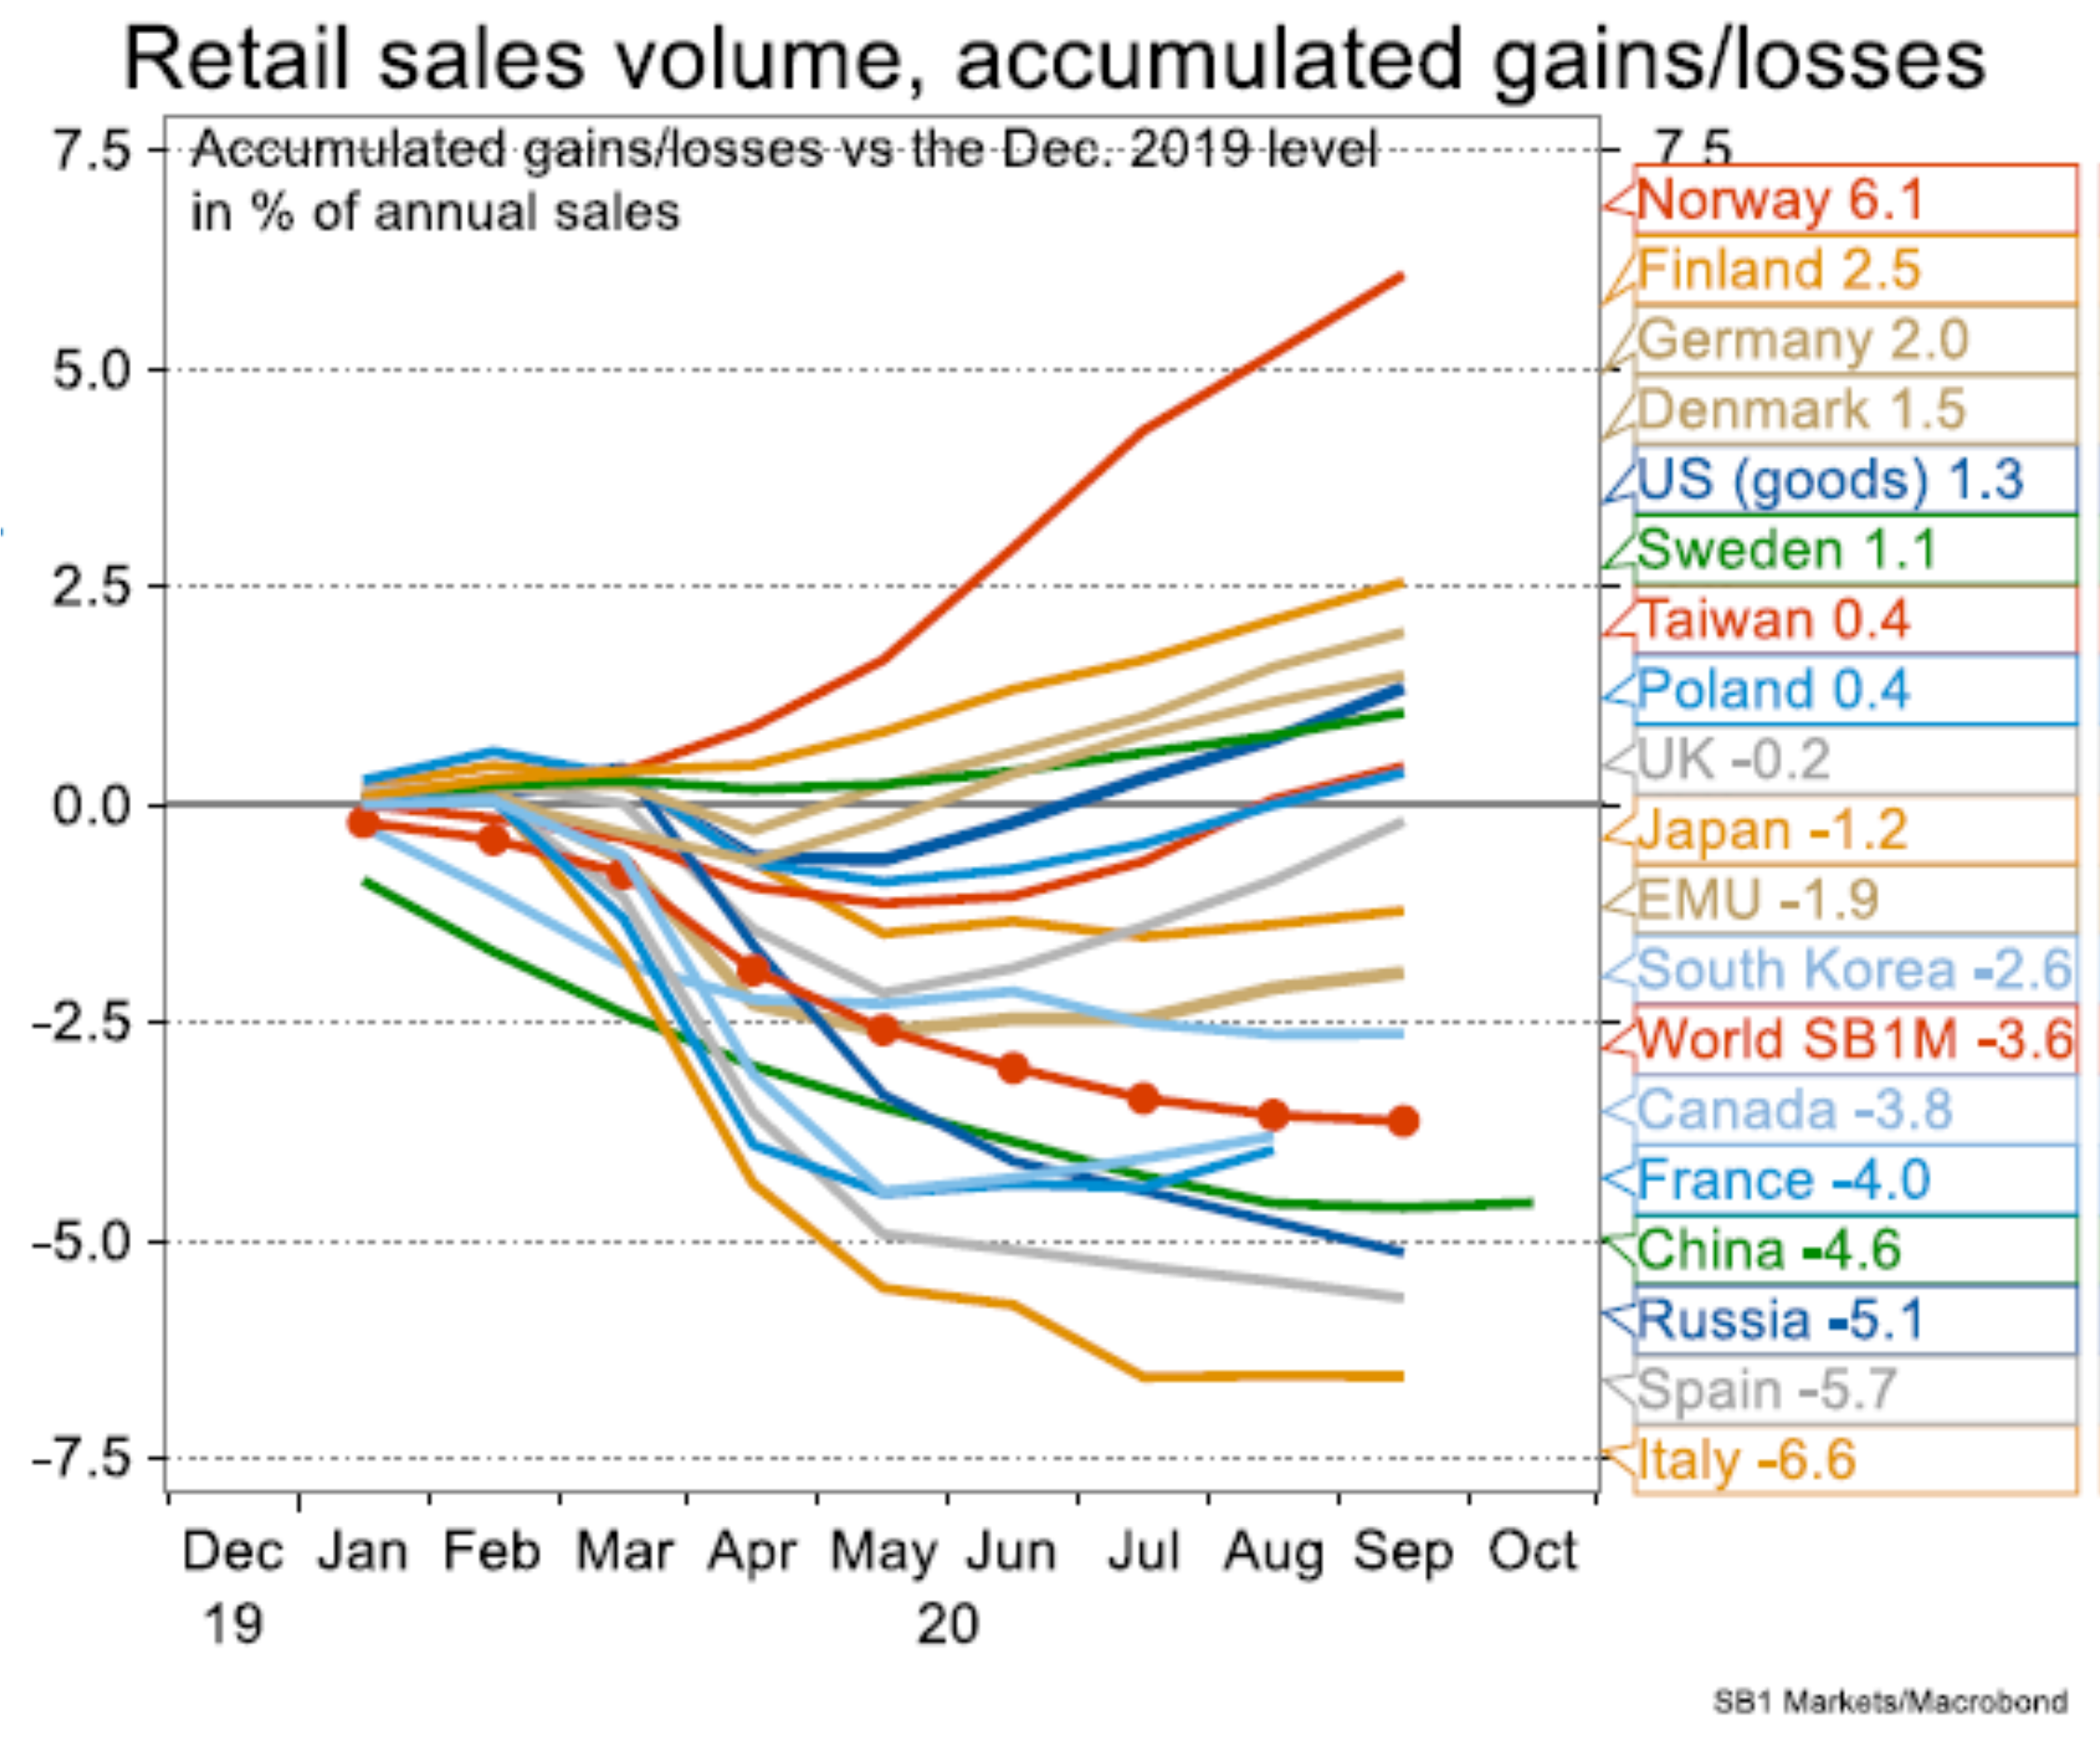 Accumulated gains/losses in retail sales 2020